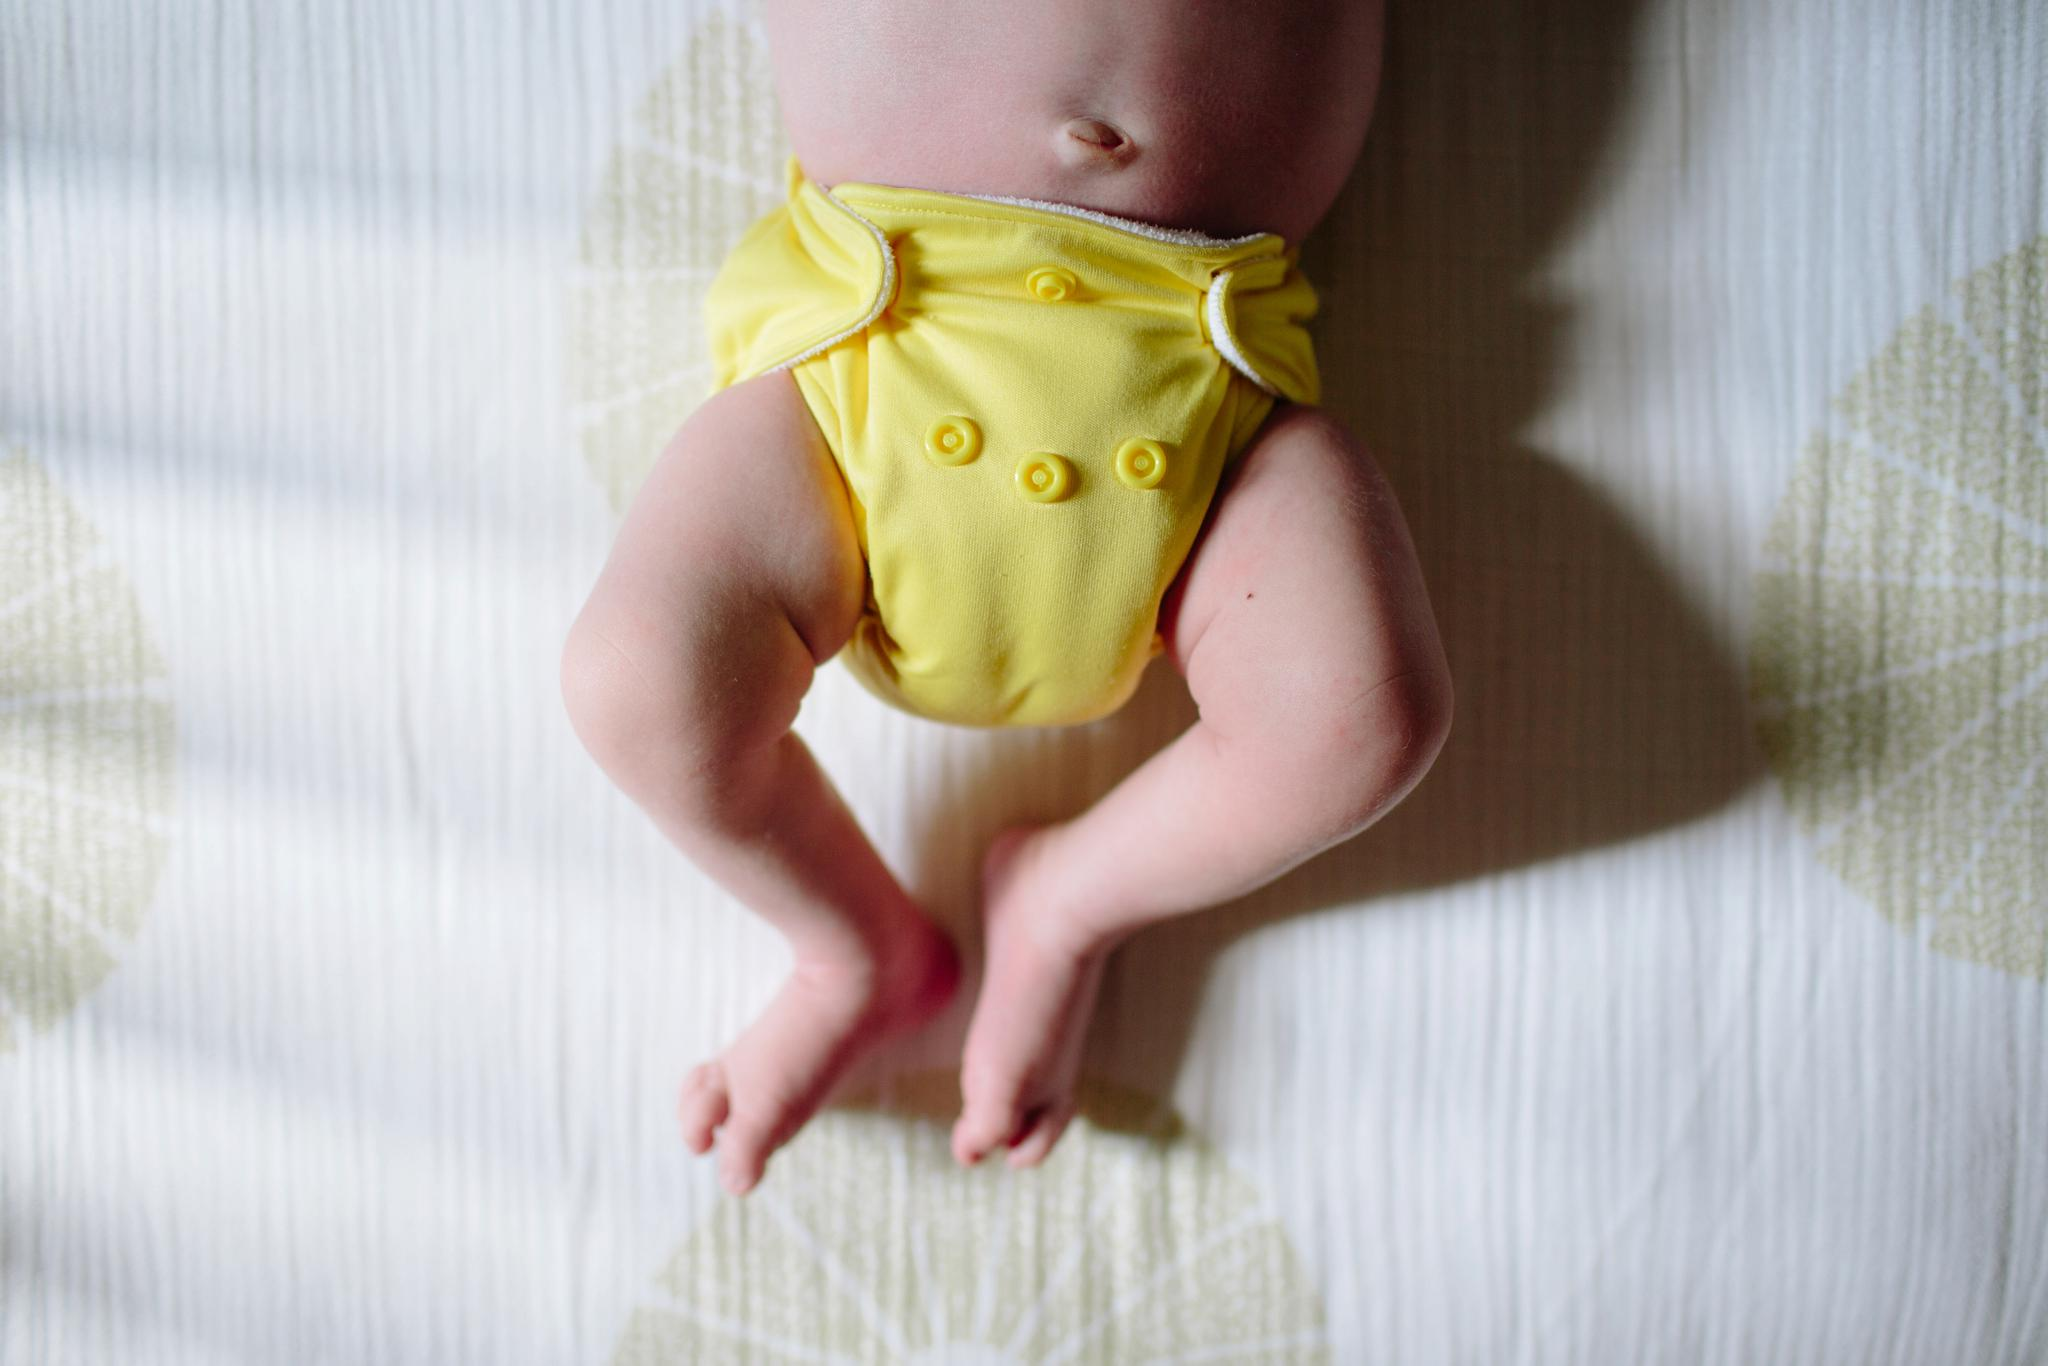 lil_joey_newborn_cloth_diaper_review_7910.jpg